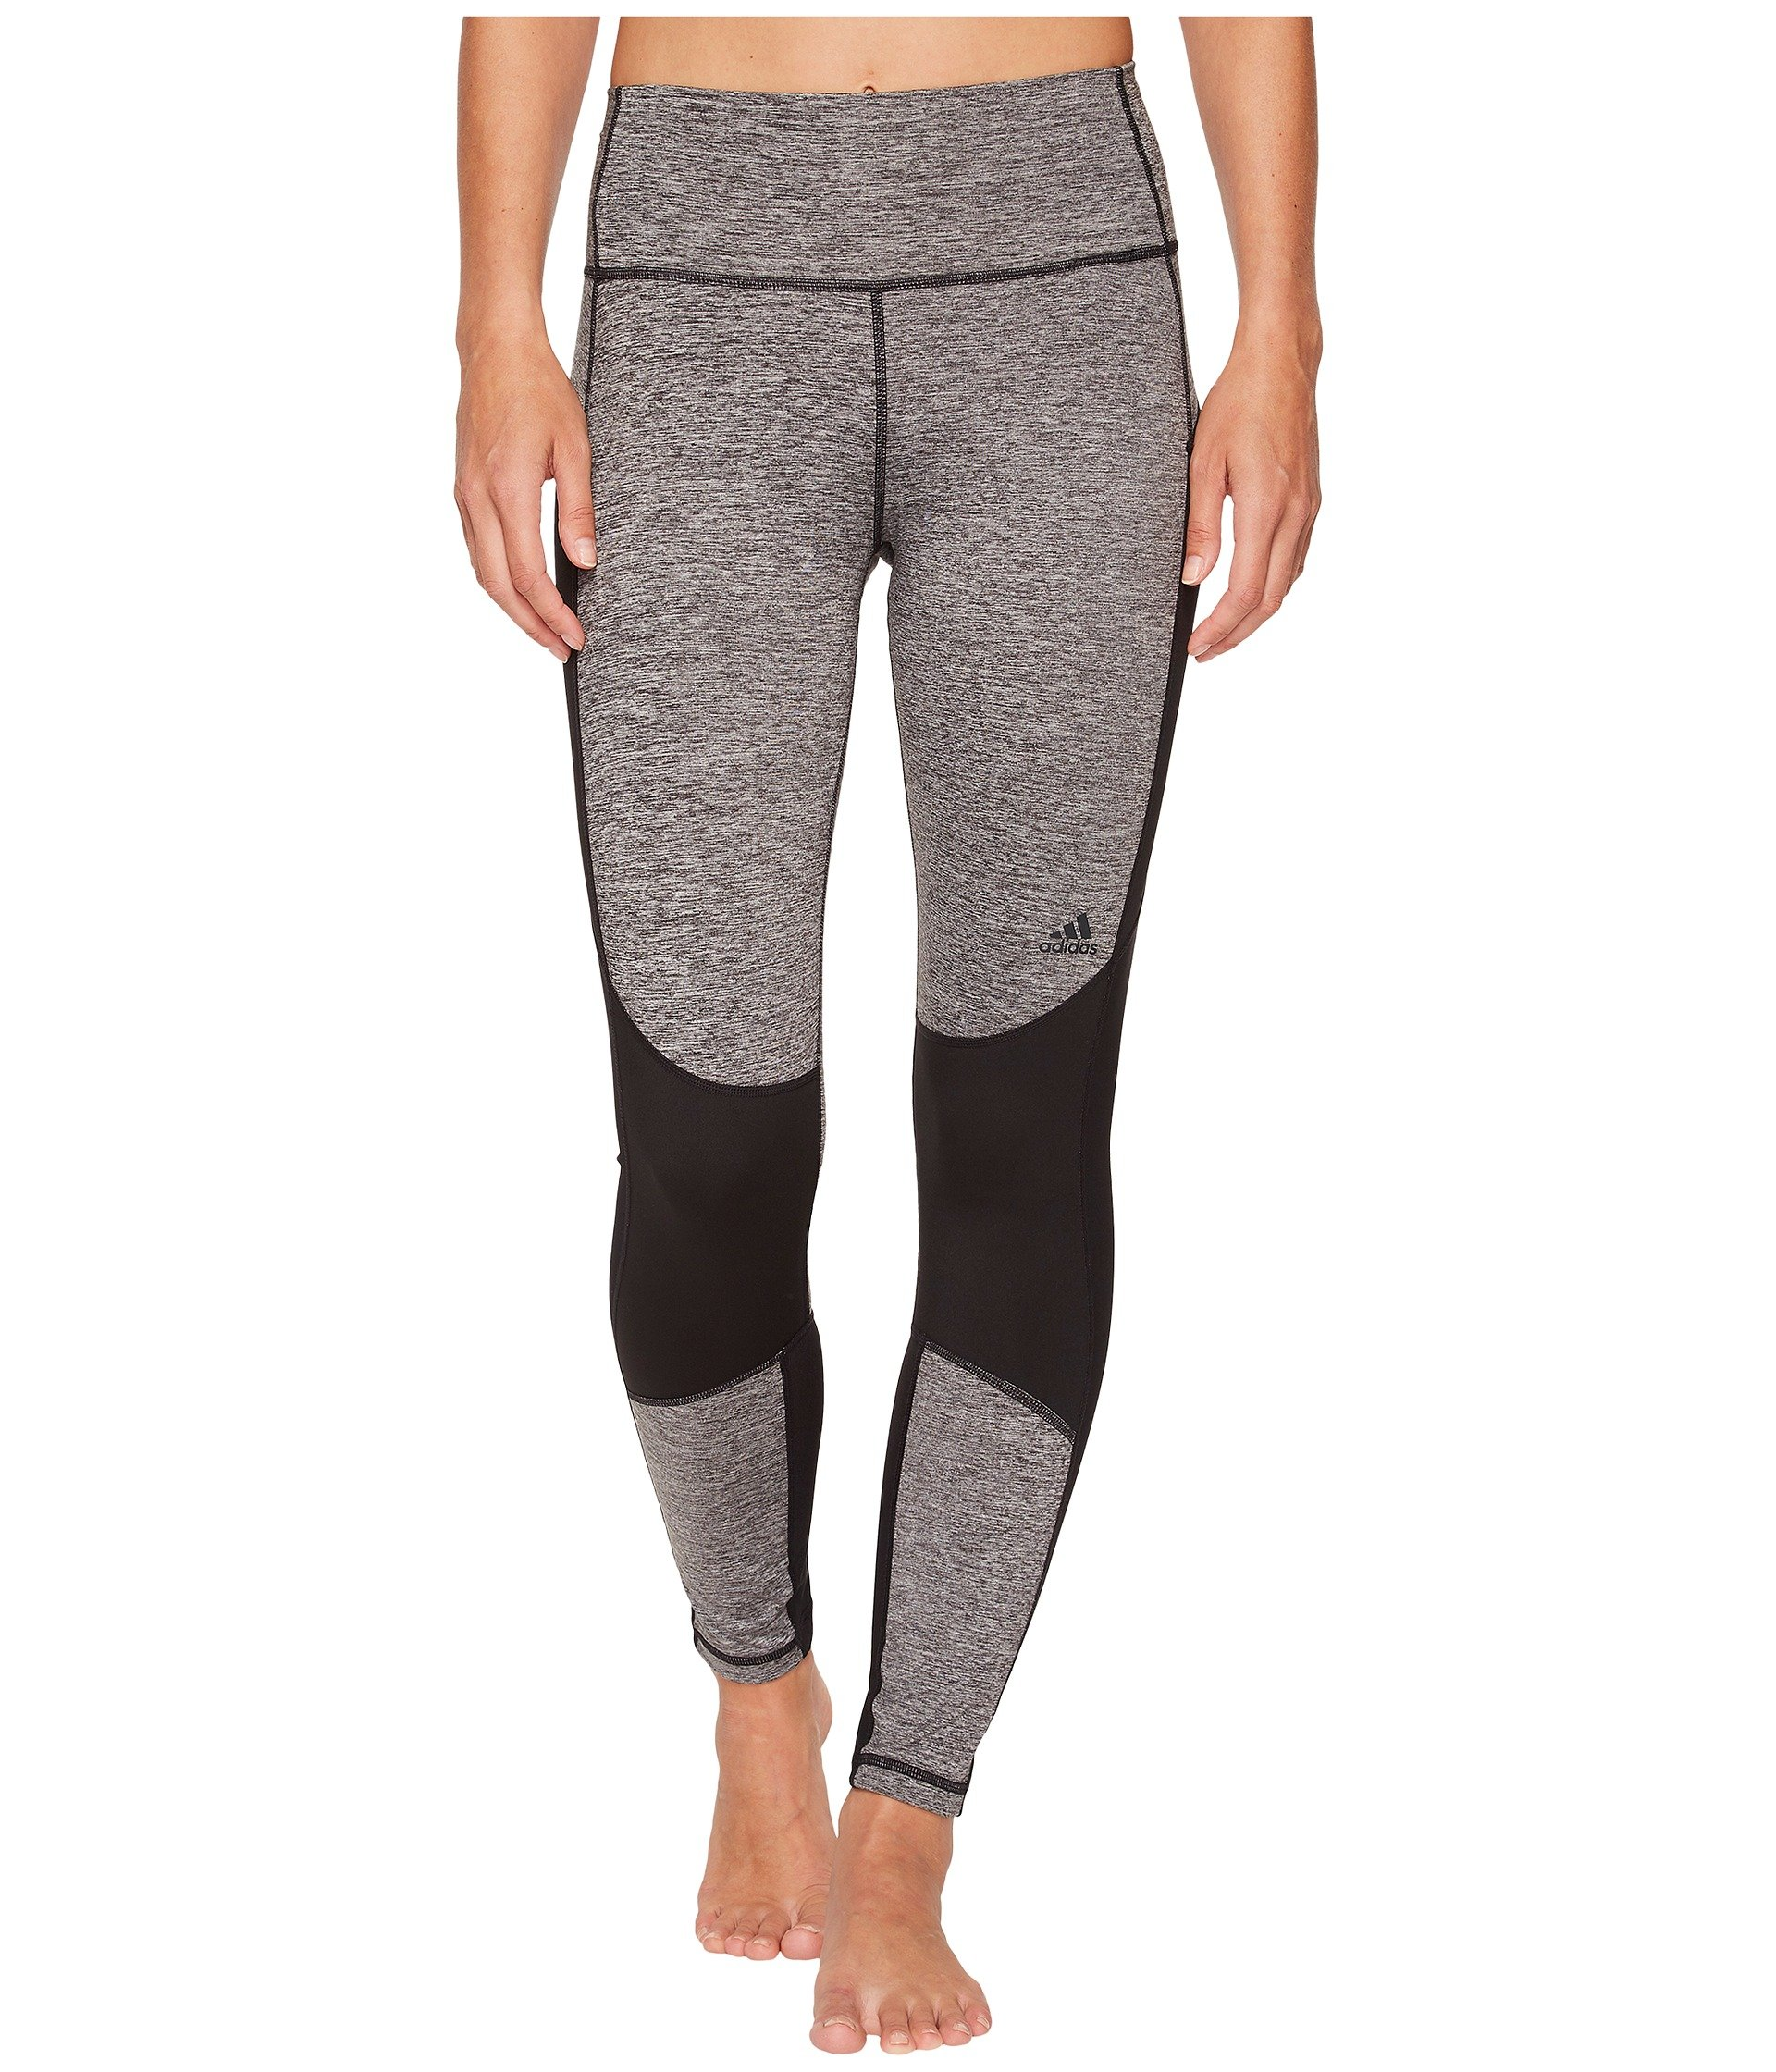 adidas Women's Believe This High-Rise 7/8 Soft Tights Black X-Small